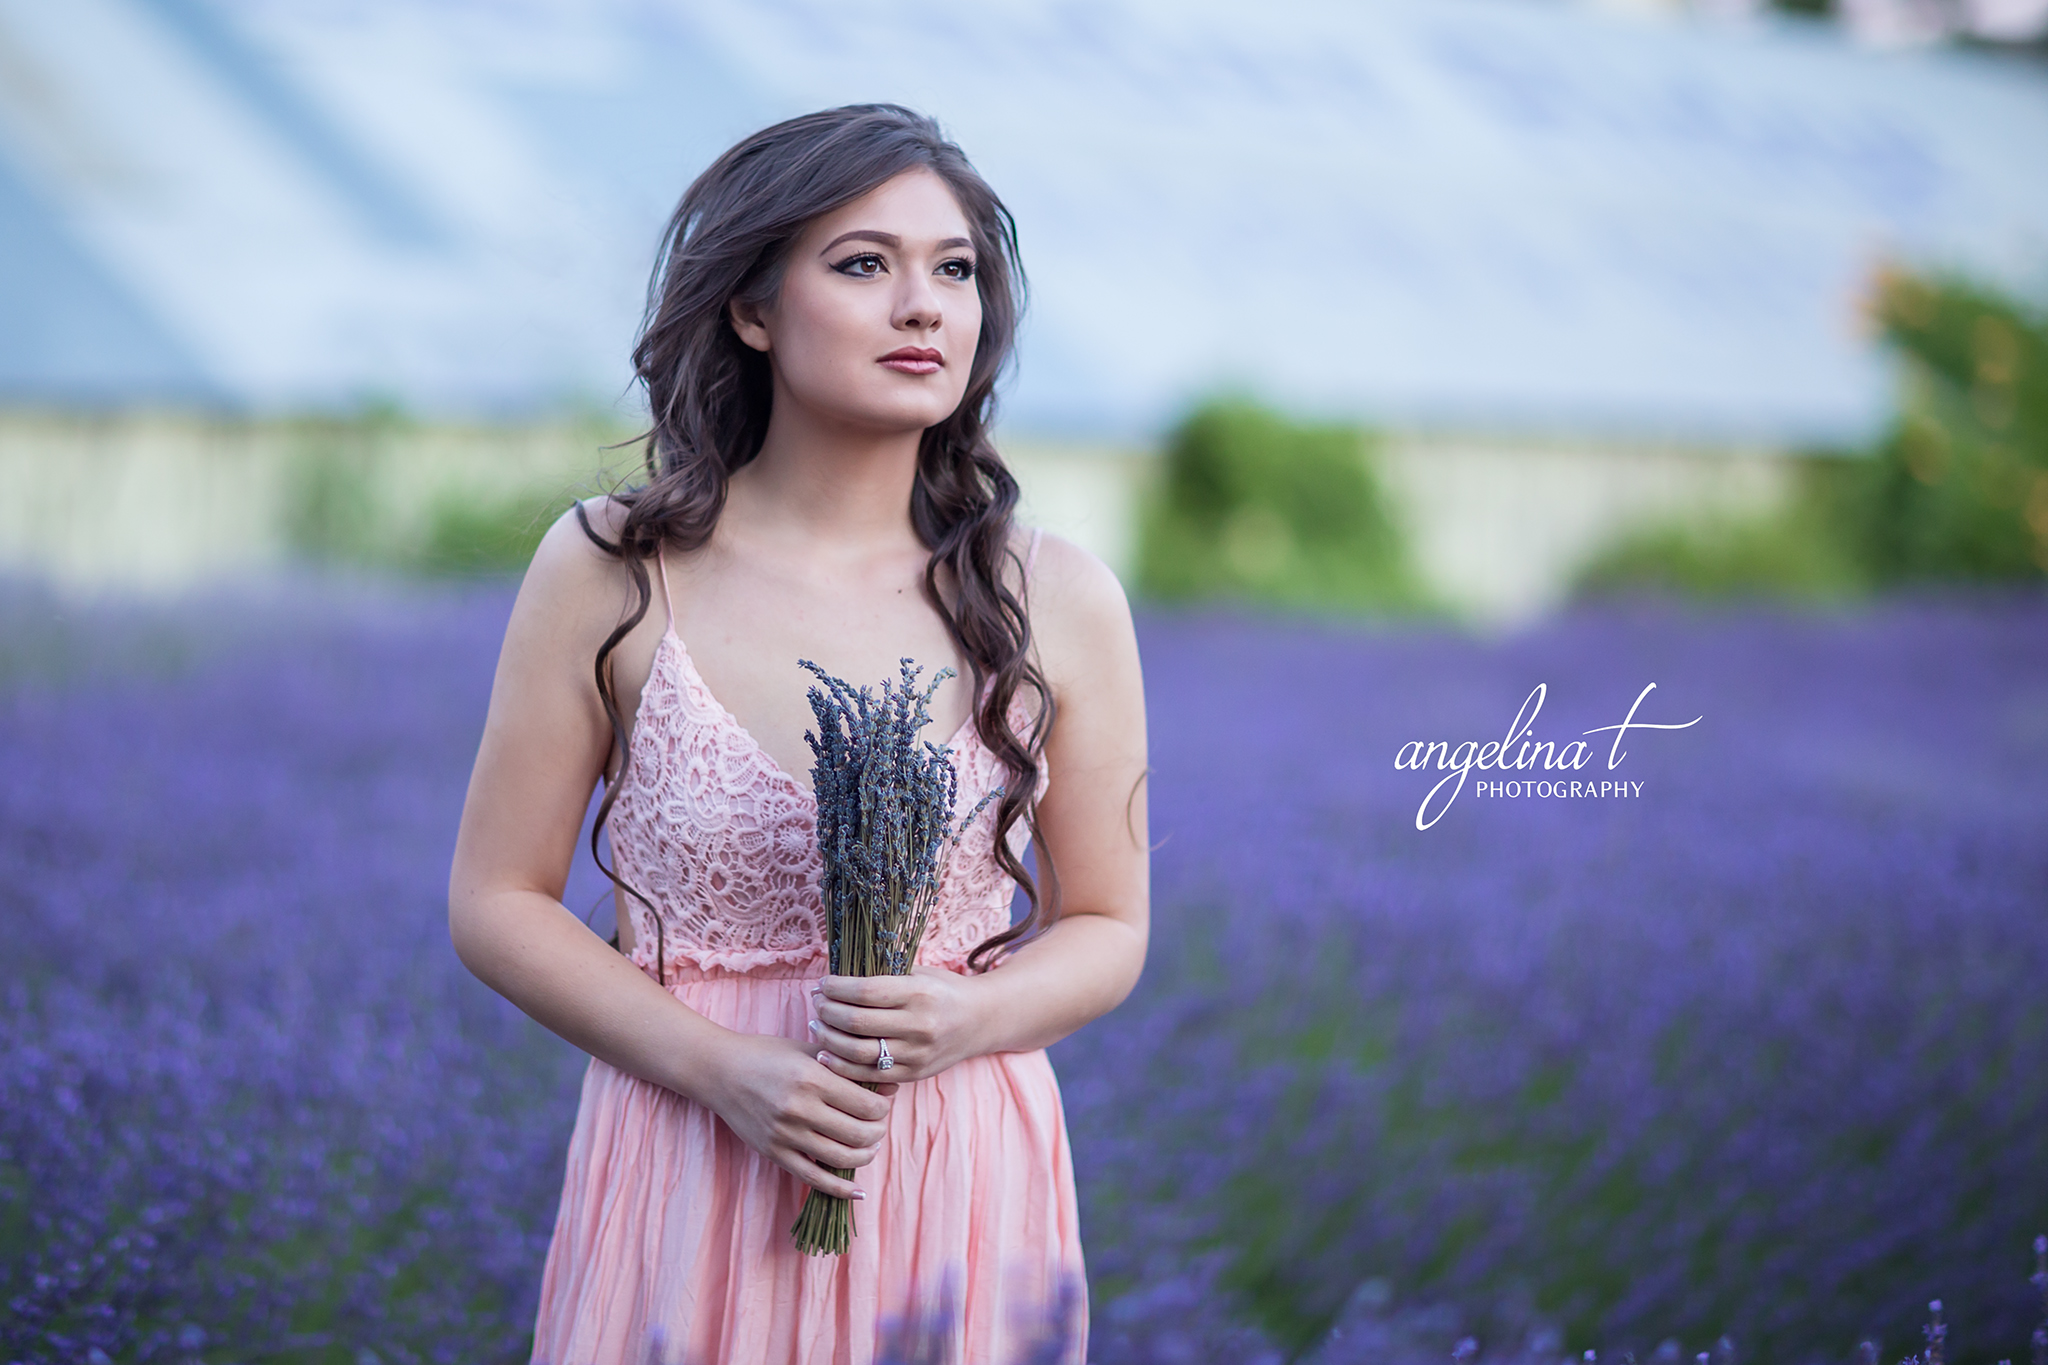 Lavender Field Engagement Photography-15.jpg